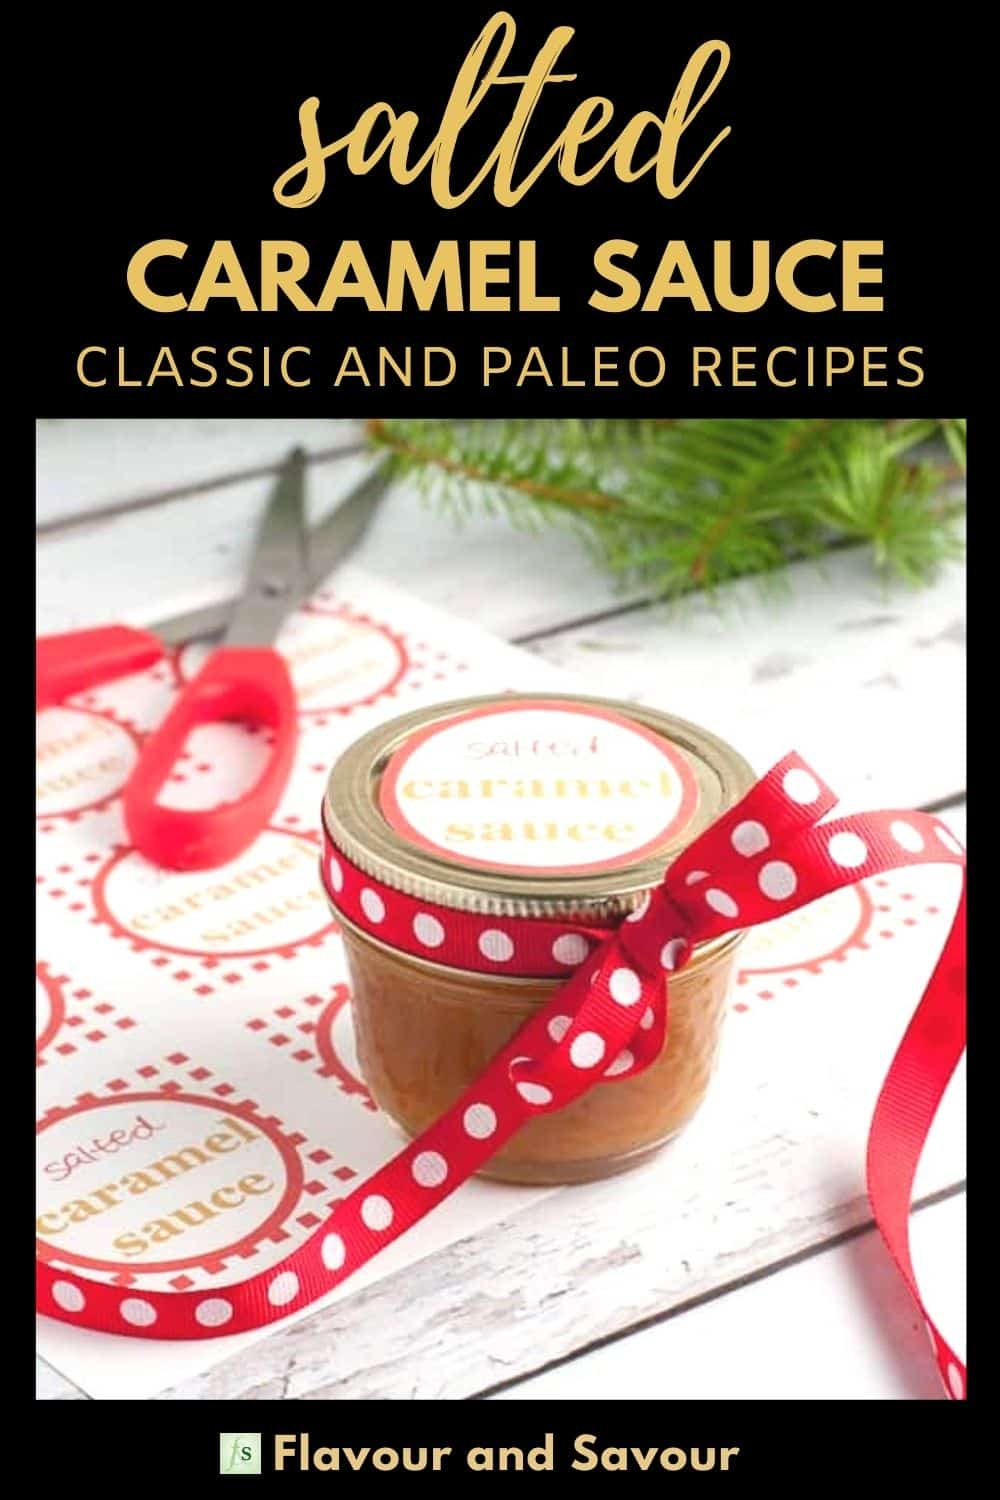 Image and text overlay for Salted Caramel Sauce